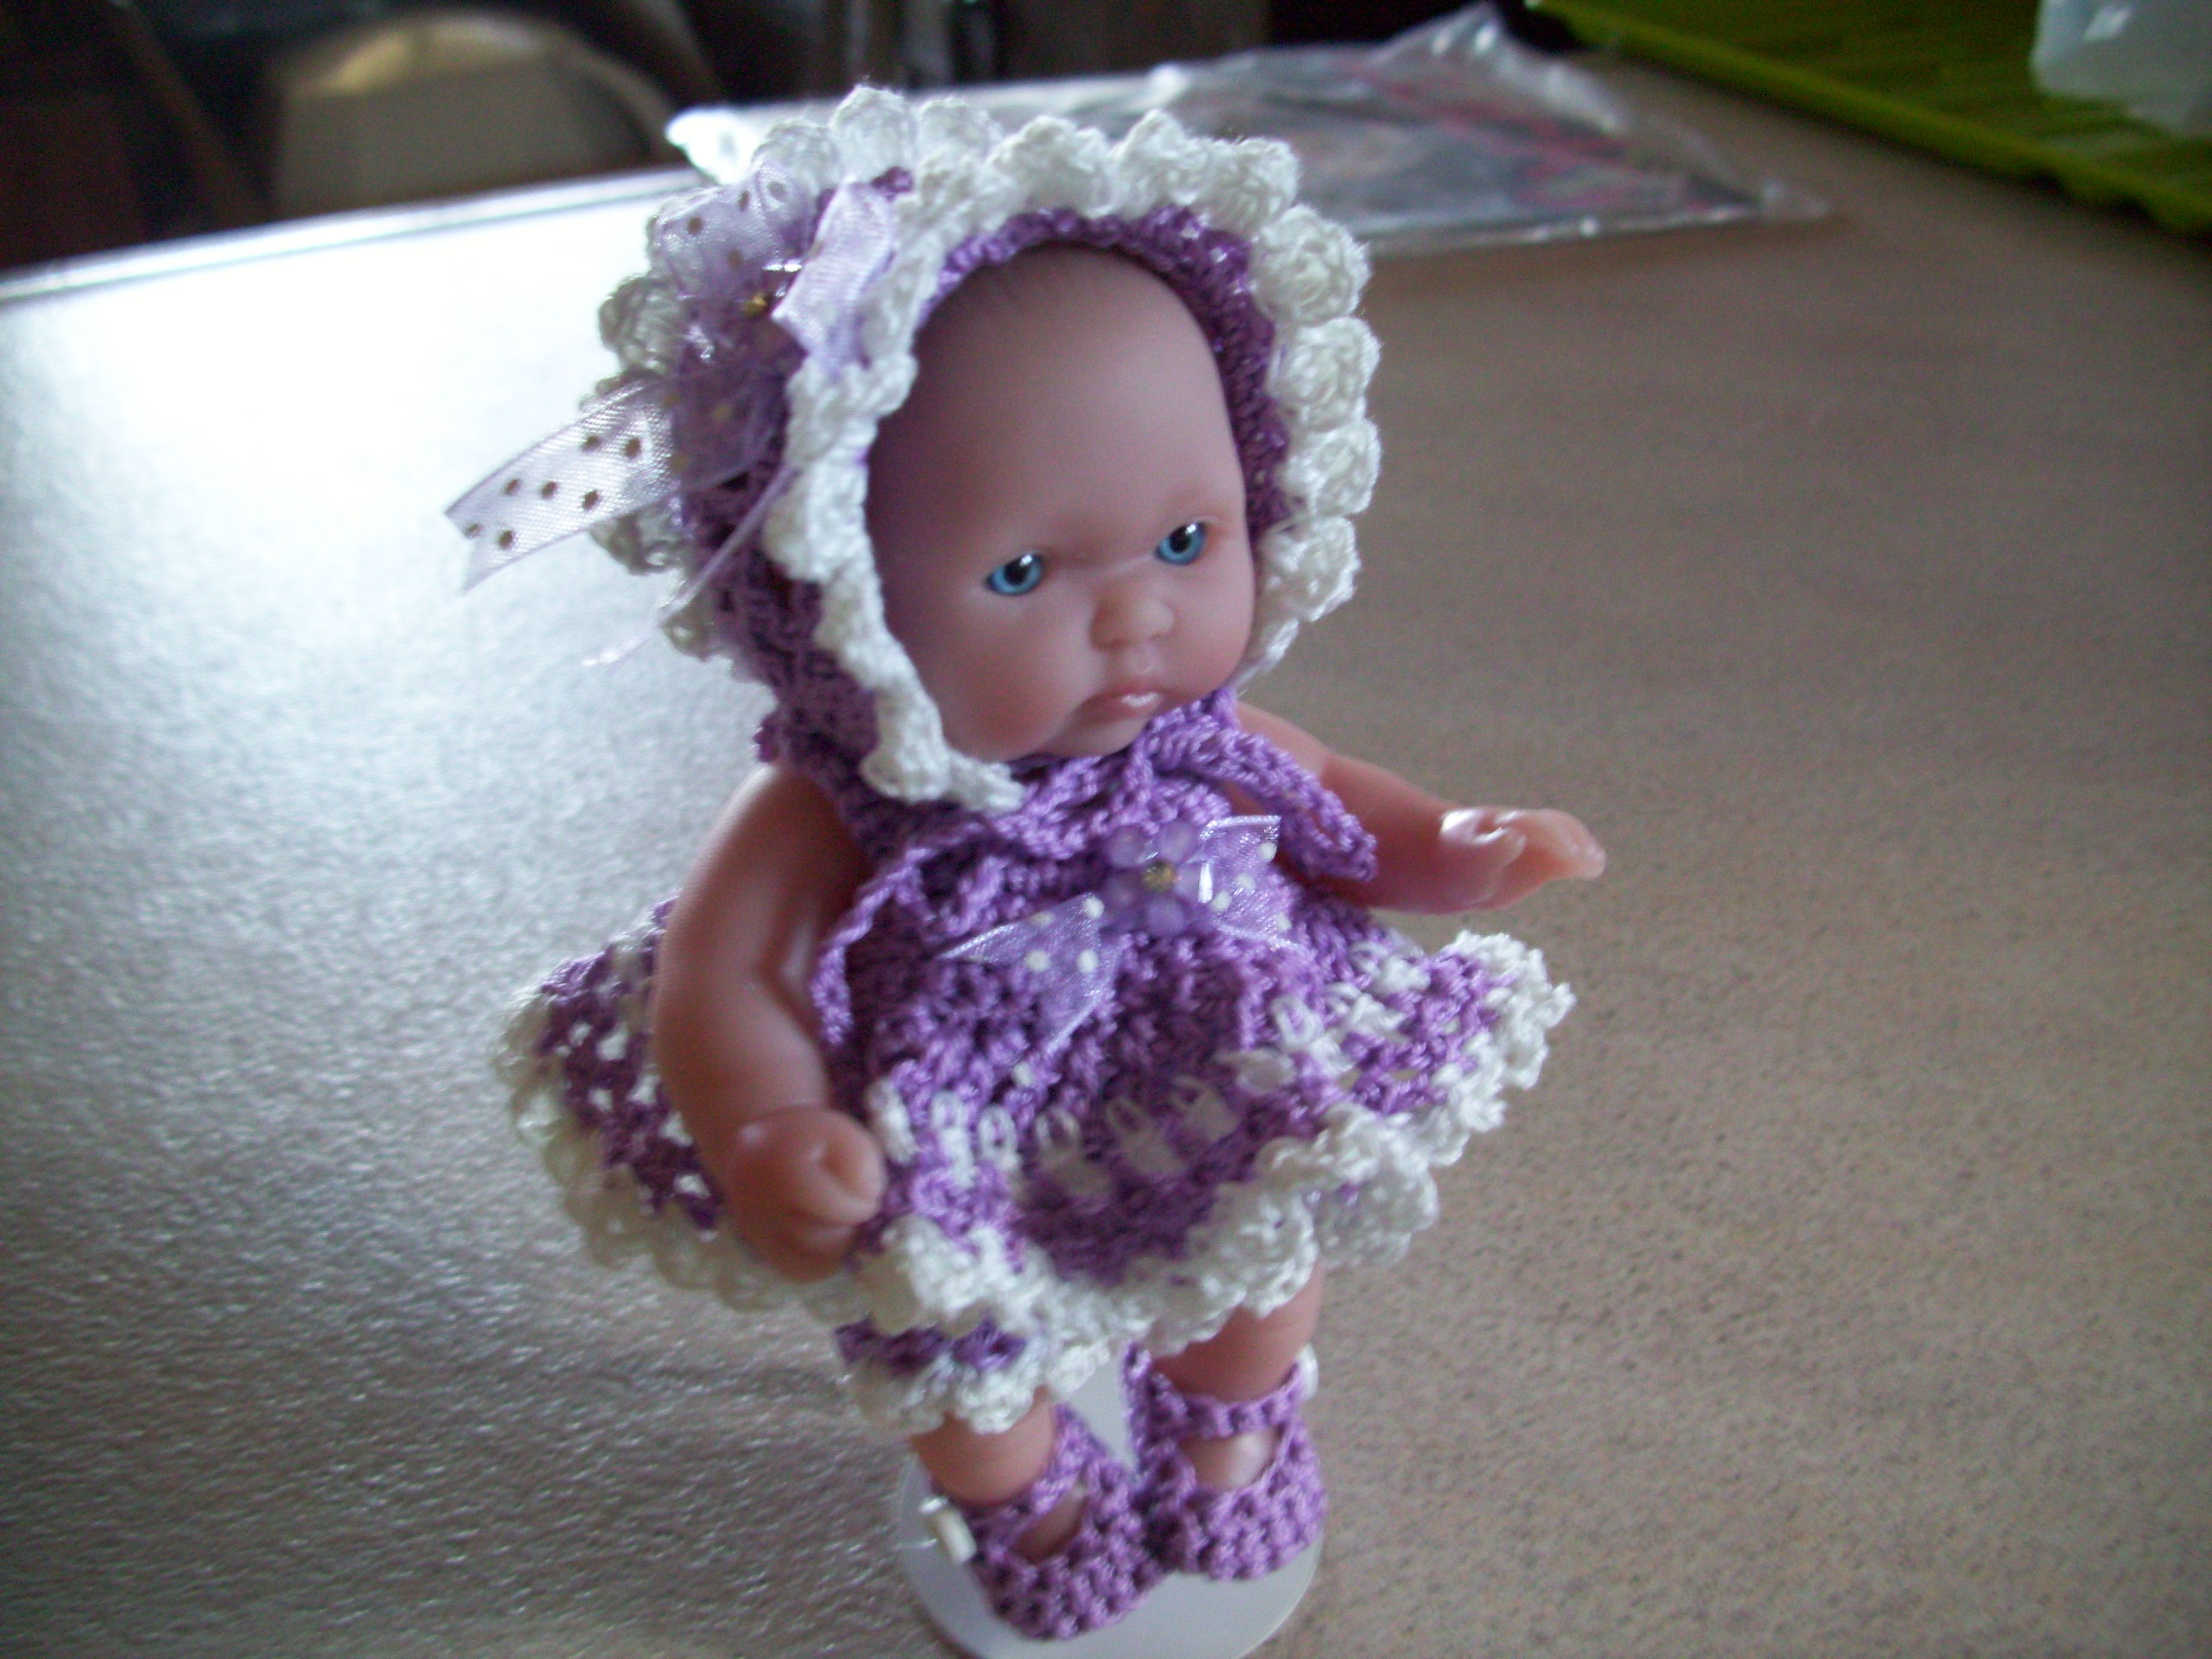 Lavender/White baby outfit with Bonnet.